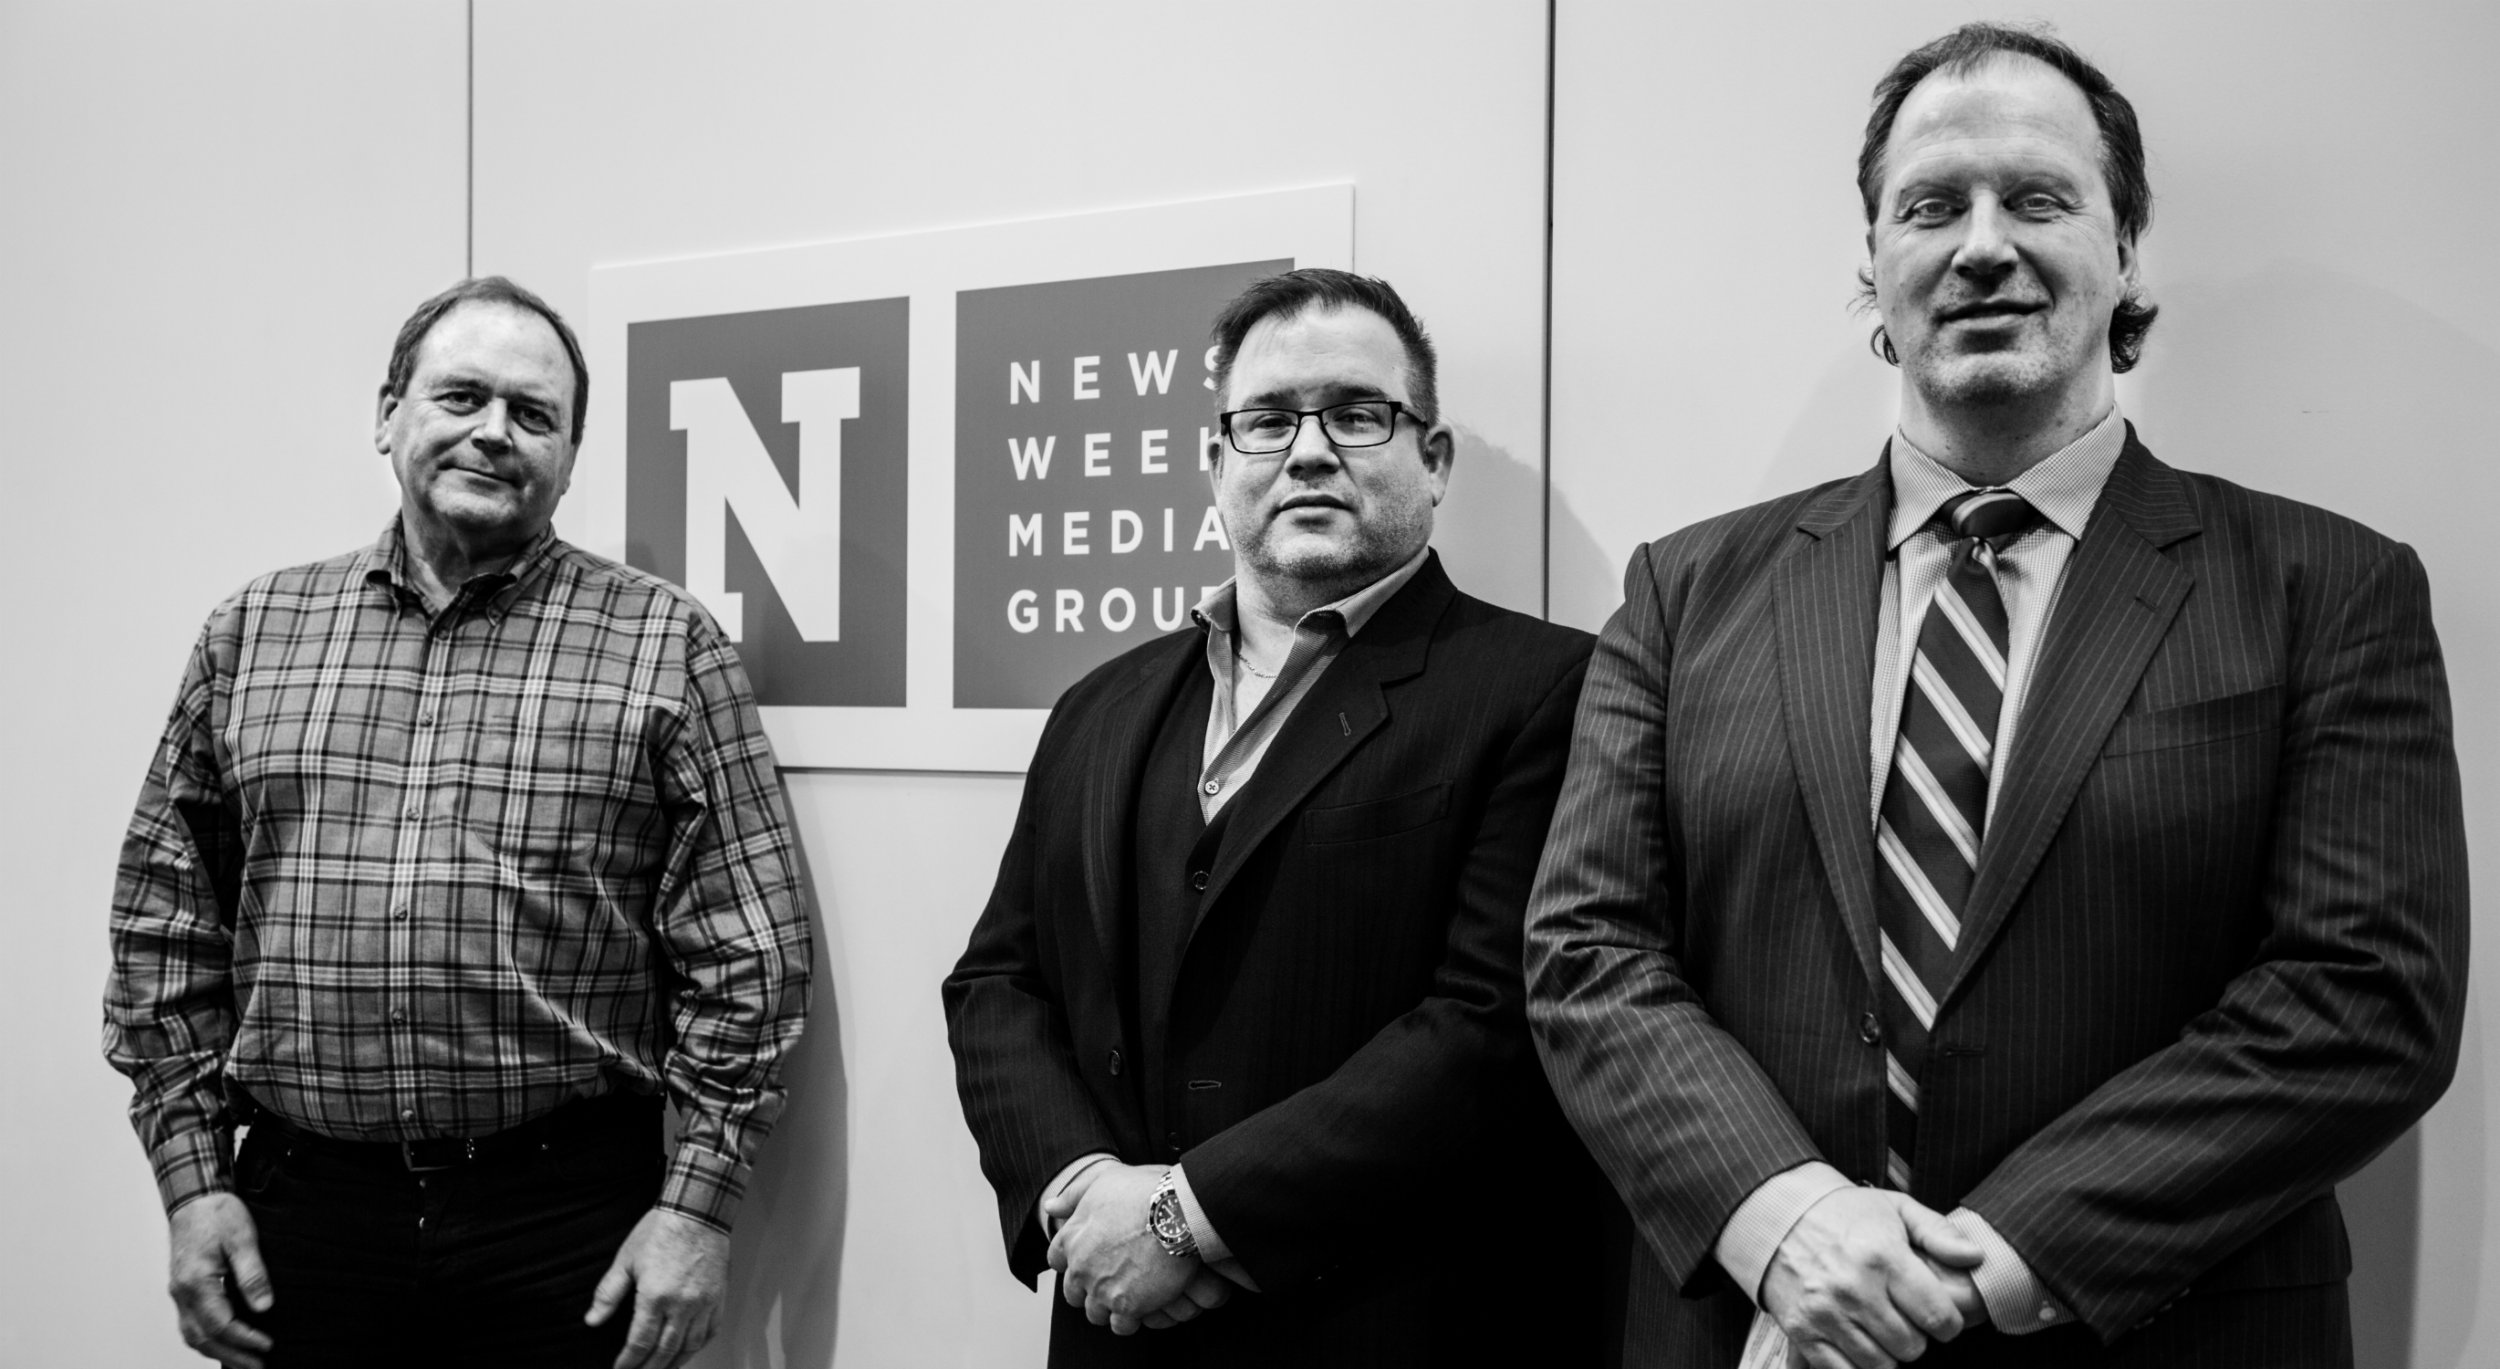 Impact Wrestling executives Ed Nordholm, Scott D'Amore and Don Callis